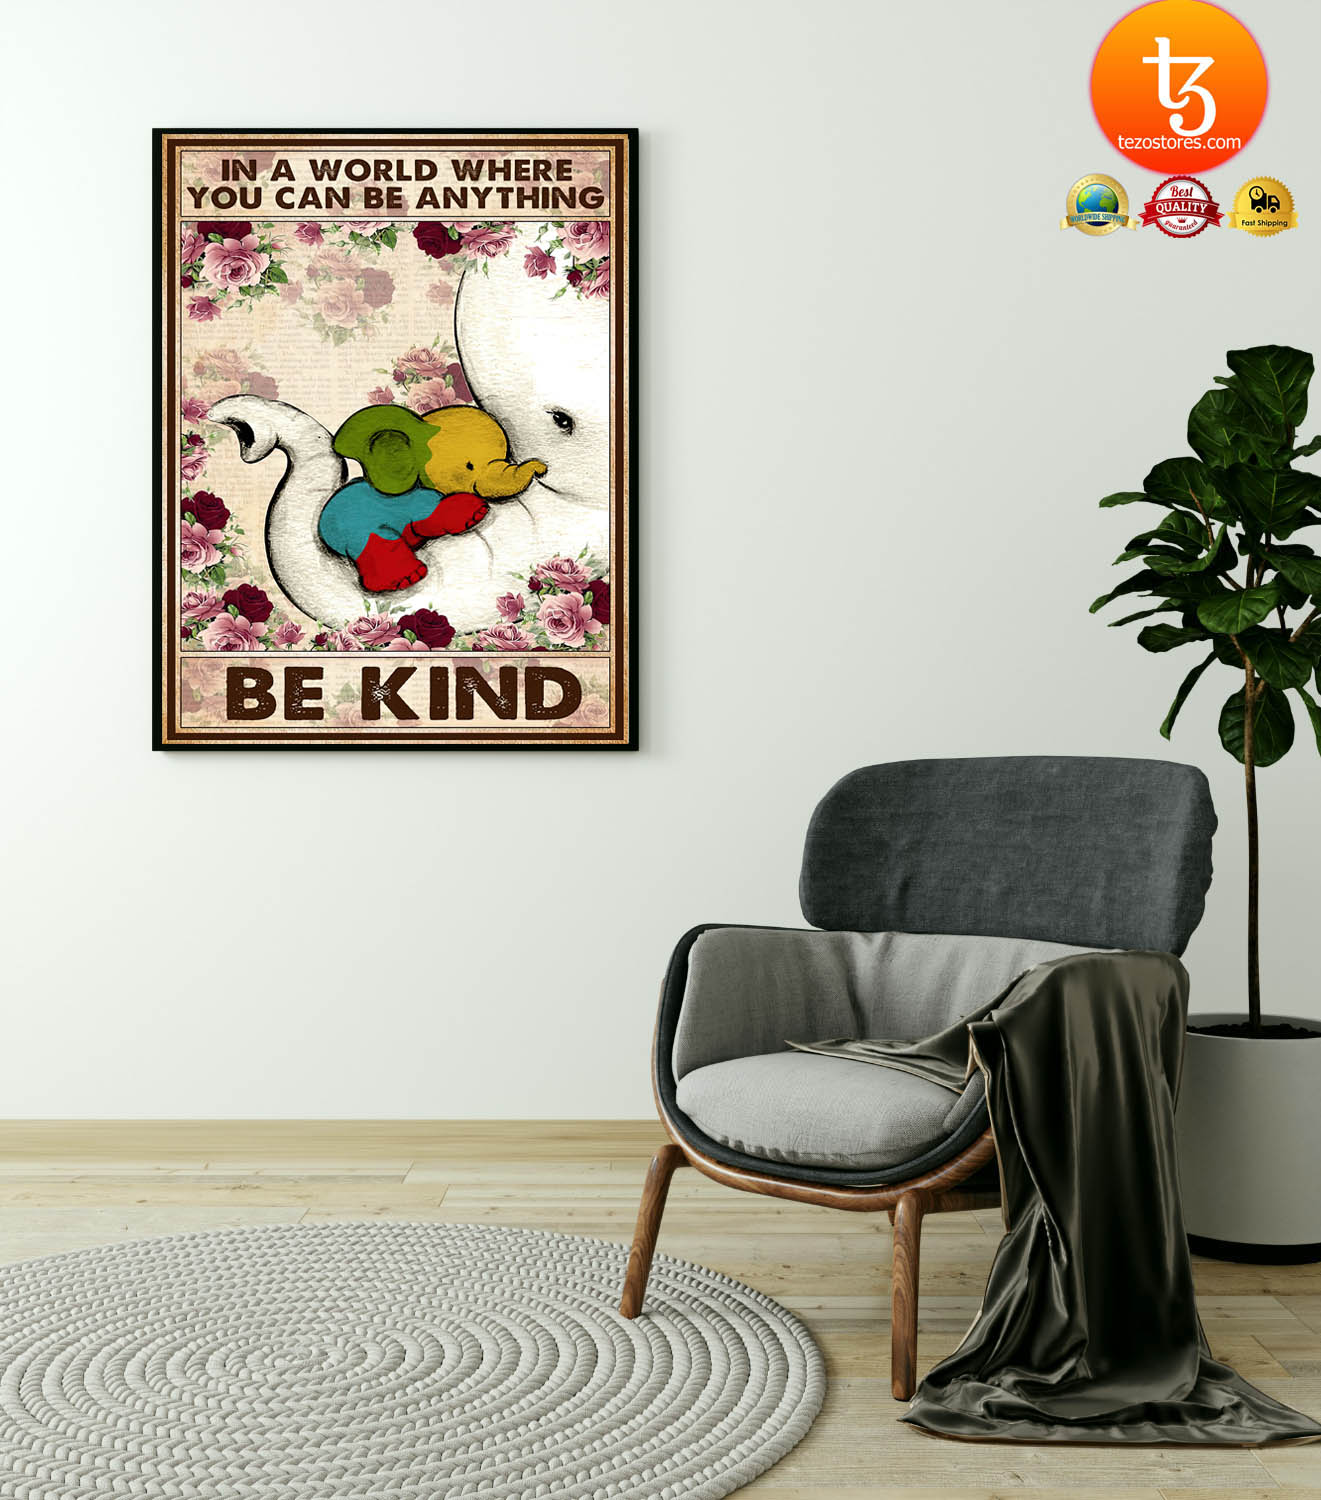 Autism Elephant In a world where you can be anything be kind poster 19